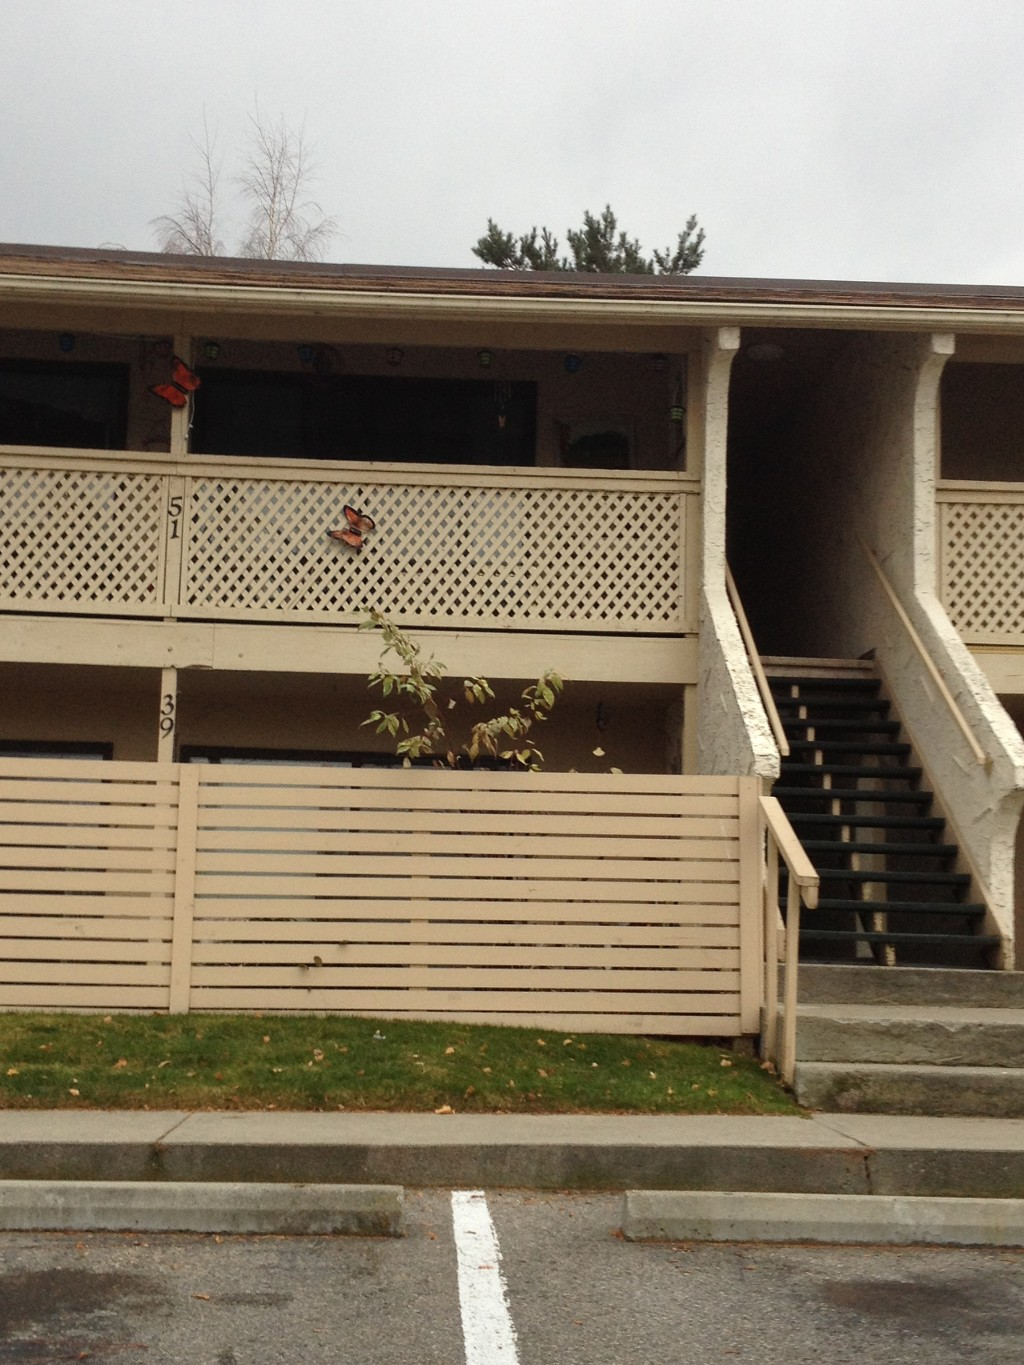 Main Photo: 53 - 310 Yorkton Avenue in Penticton: Residential Attached for sale : MLS(r) # 140636